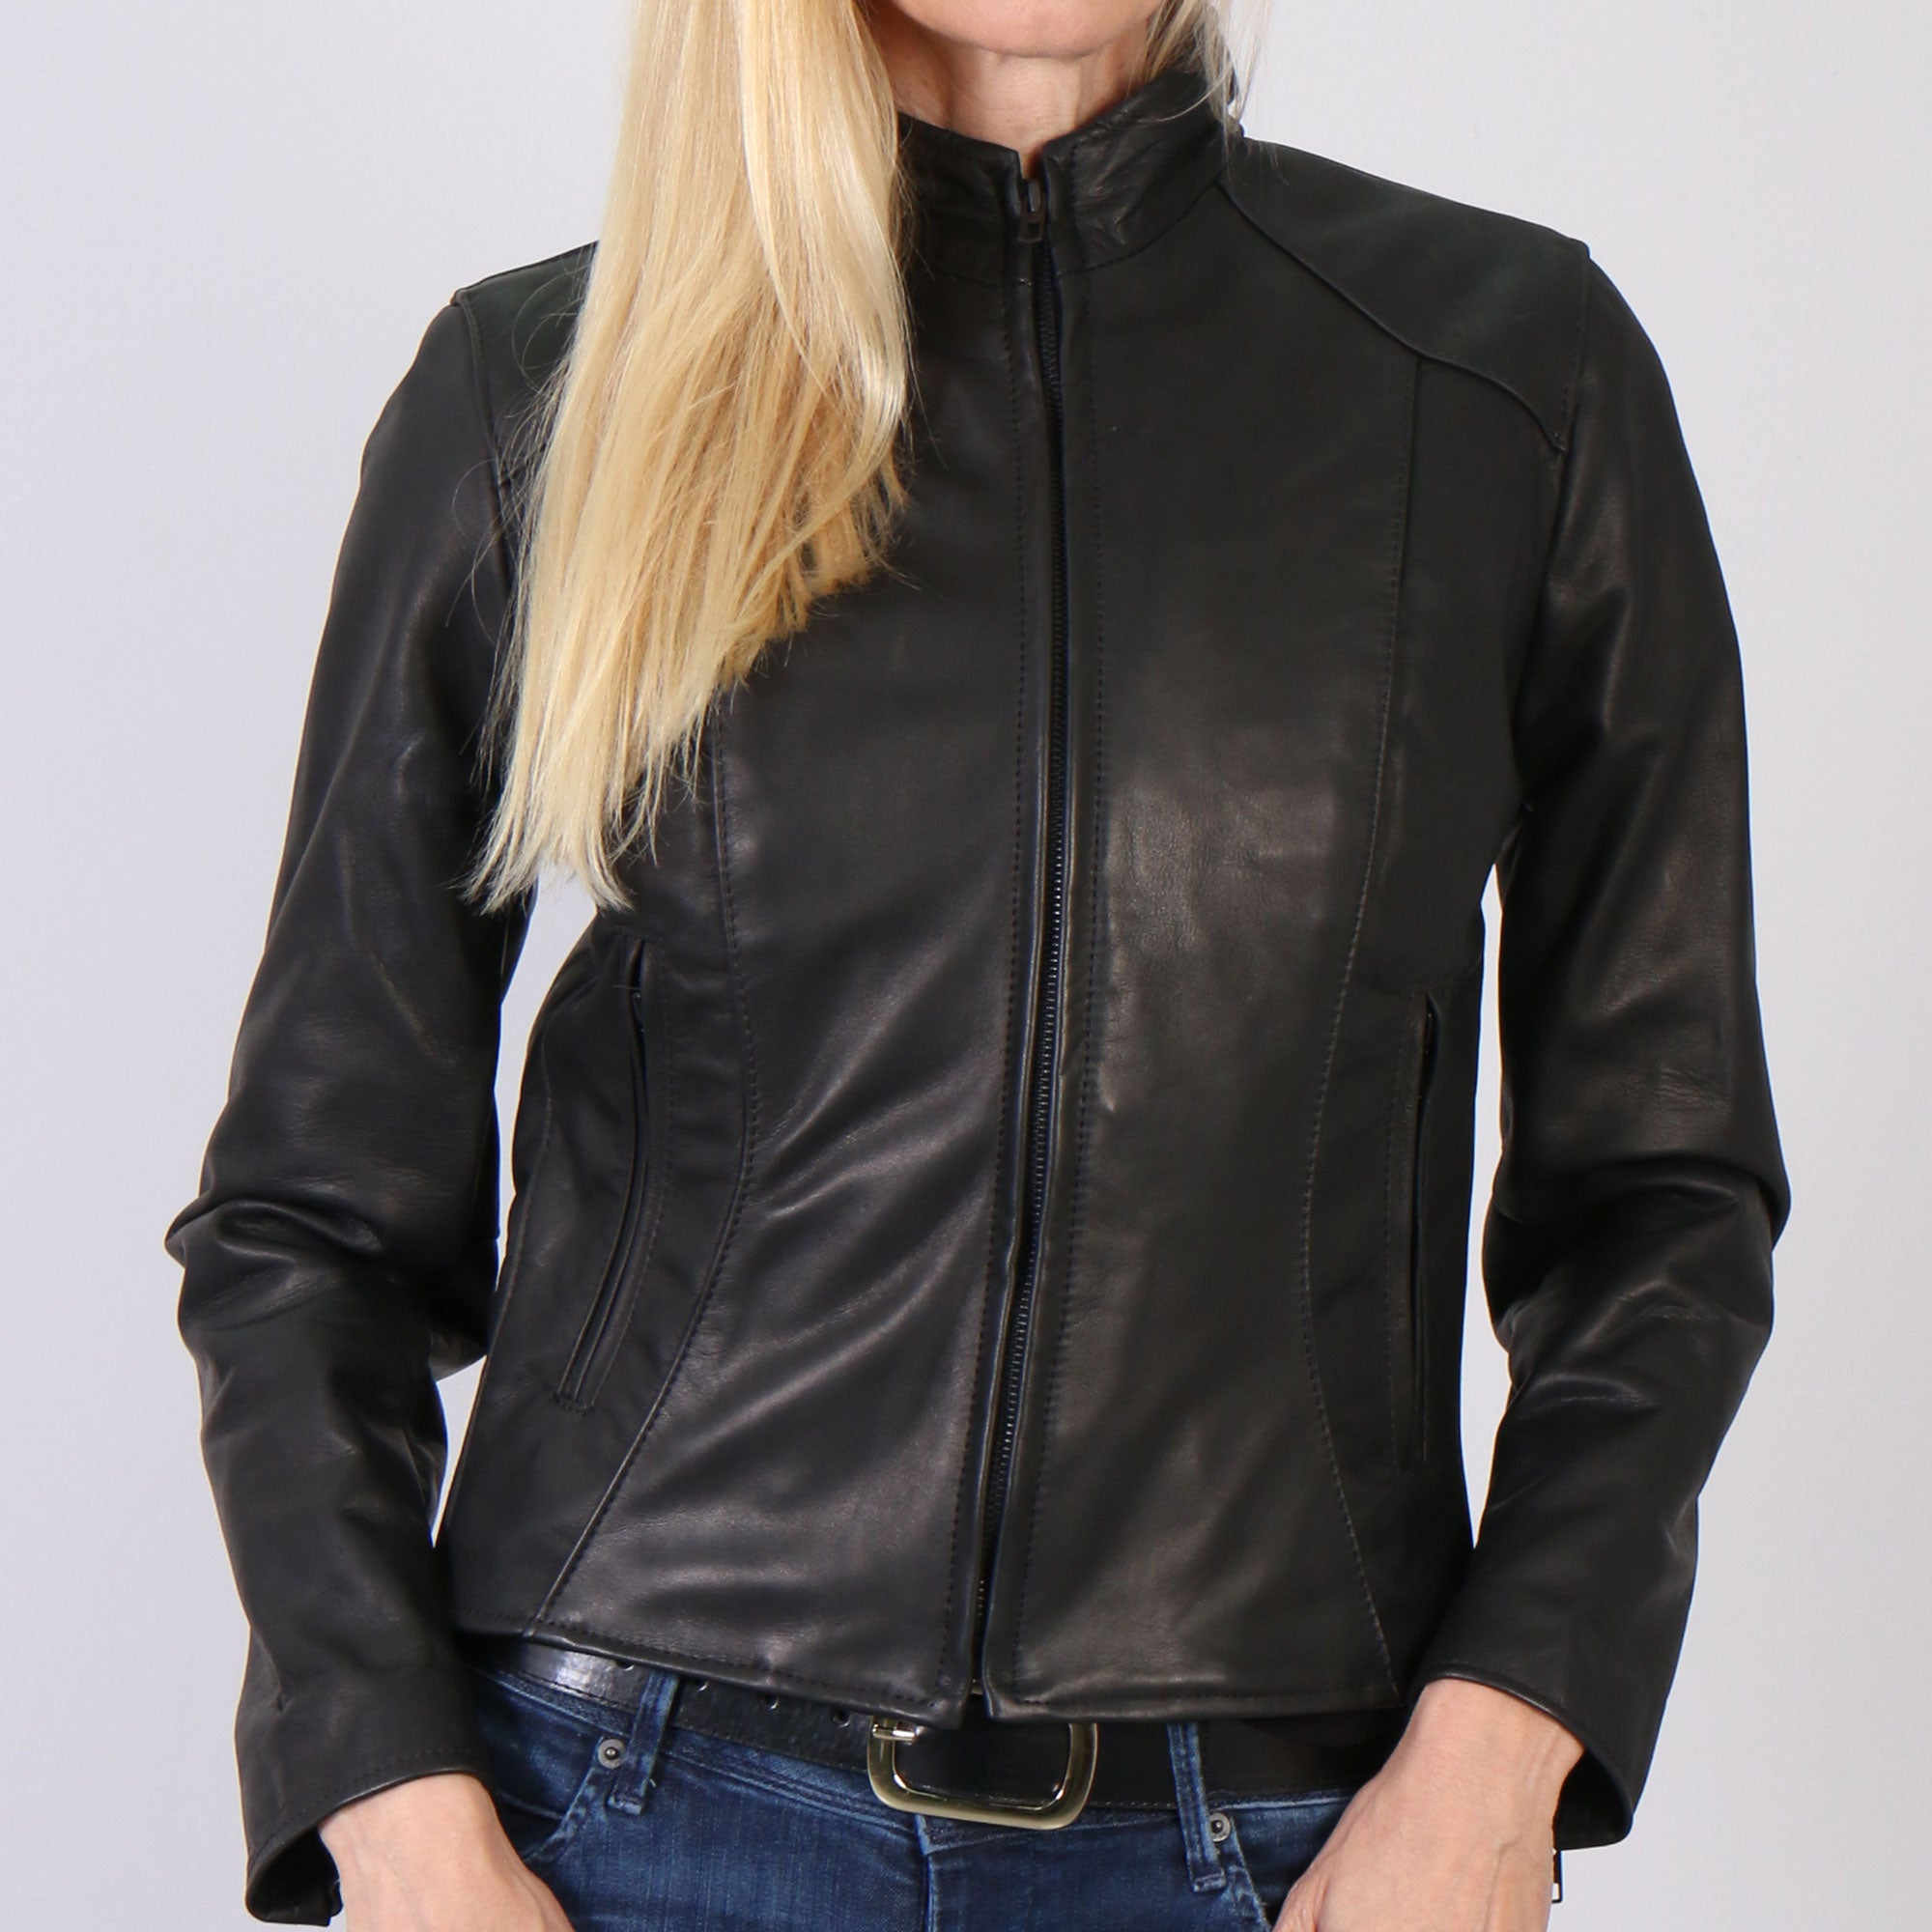 Hot Leathers USA Made Ladies Clean Cut Leather Jacket